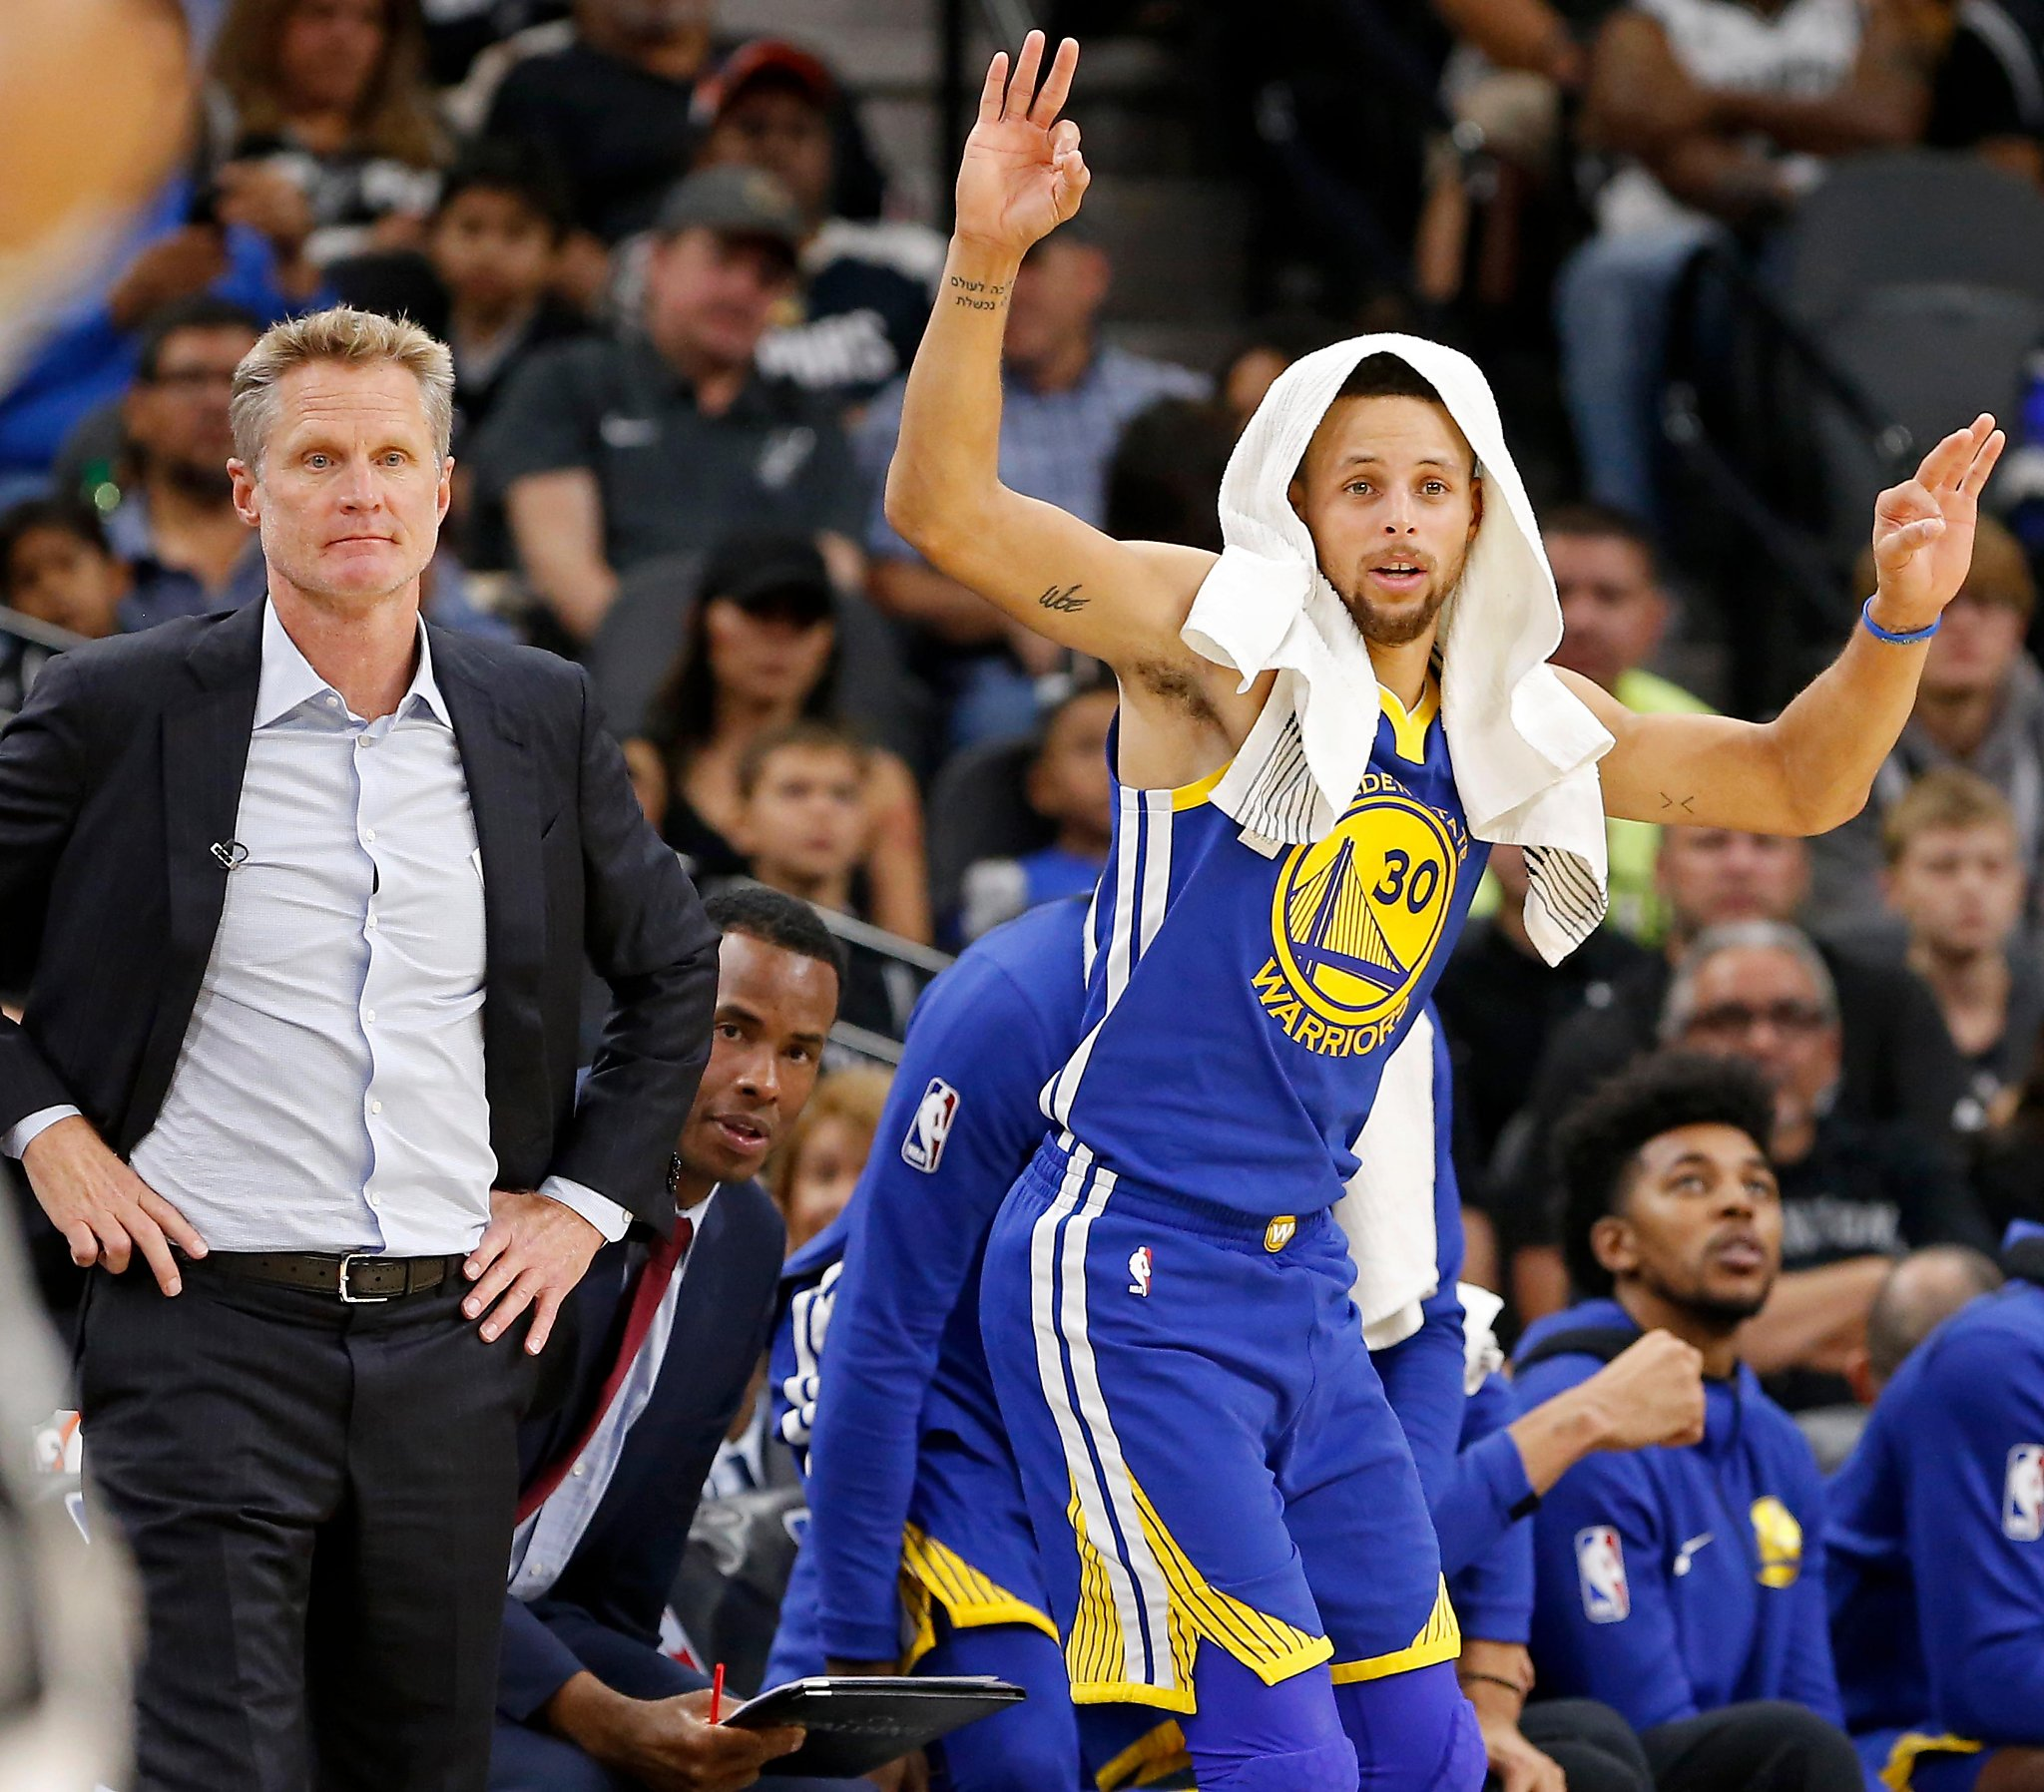 Warriors Record Without Stephen Curry 2017: Warriors' Stephen Curry Misses Shootaround, Still